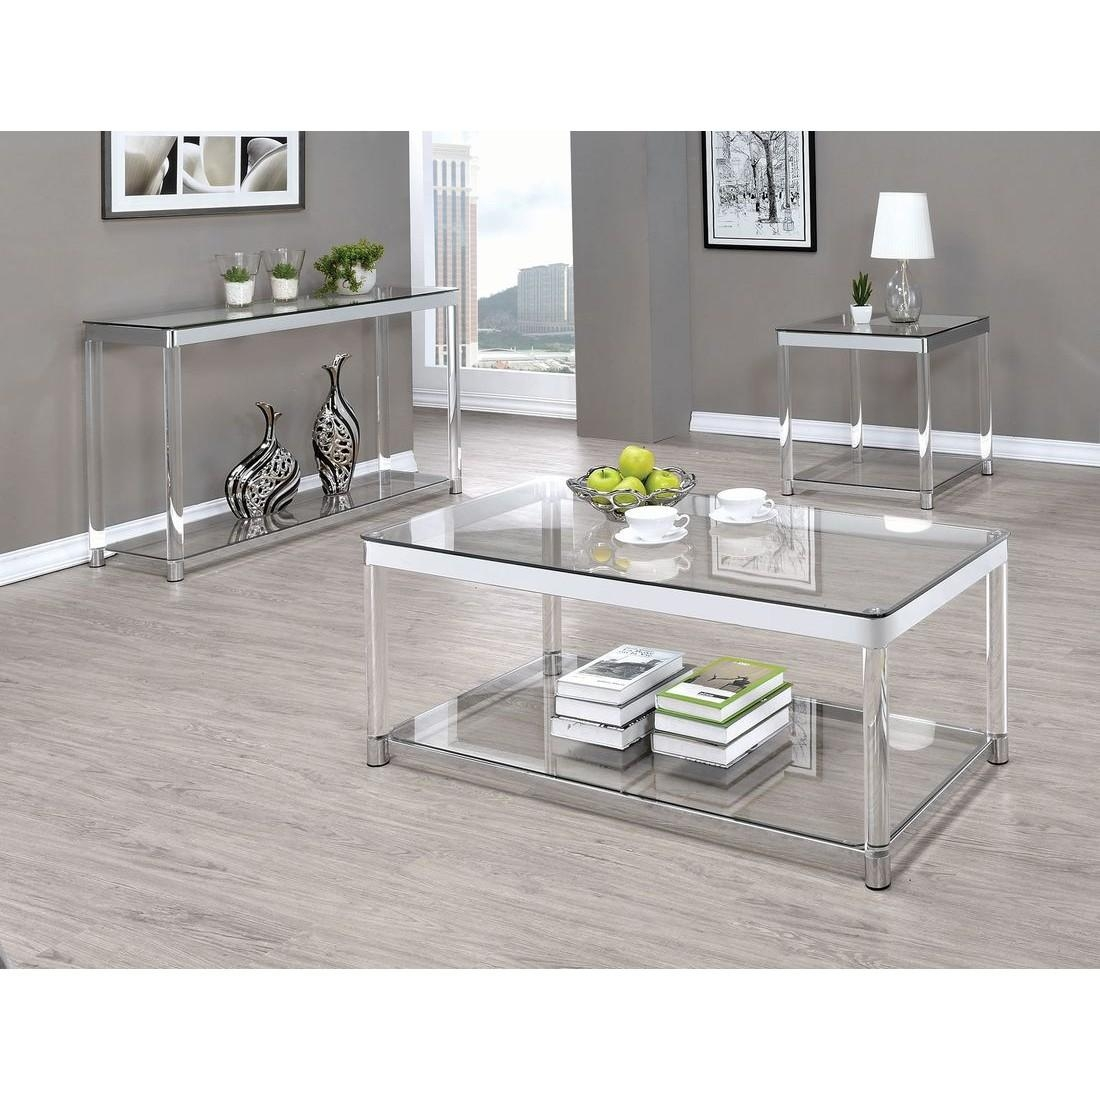 Coaster 720749 Sofa Table In Chrome/clear Acrylic With Regard To Chrome Sofa Tables (Image 5 of 20)